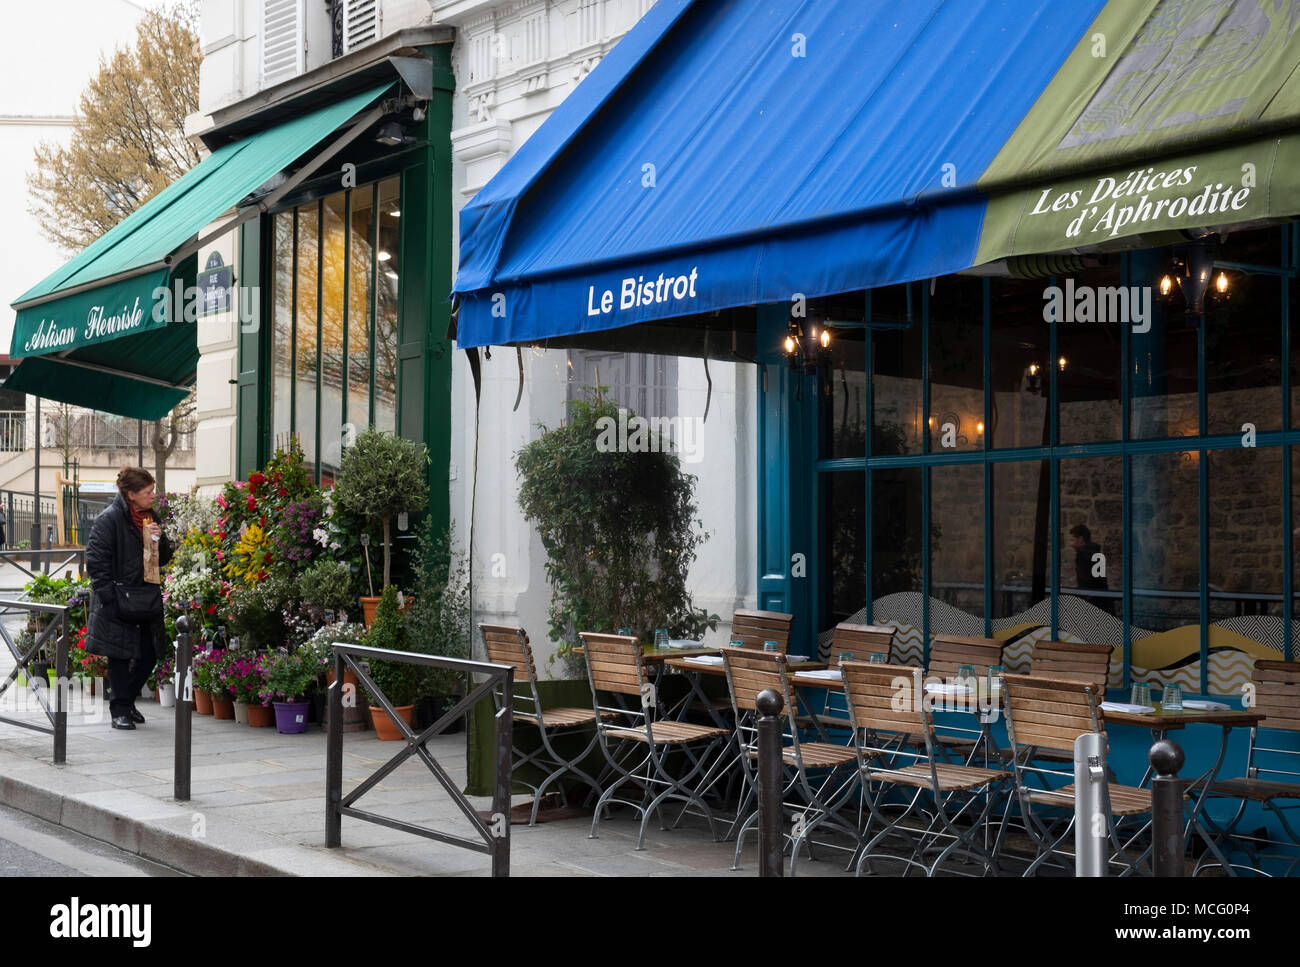 A pavement cafe and artisanal florist in the 5th arrondissement, Paris, France, Europe - Stock Image